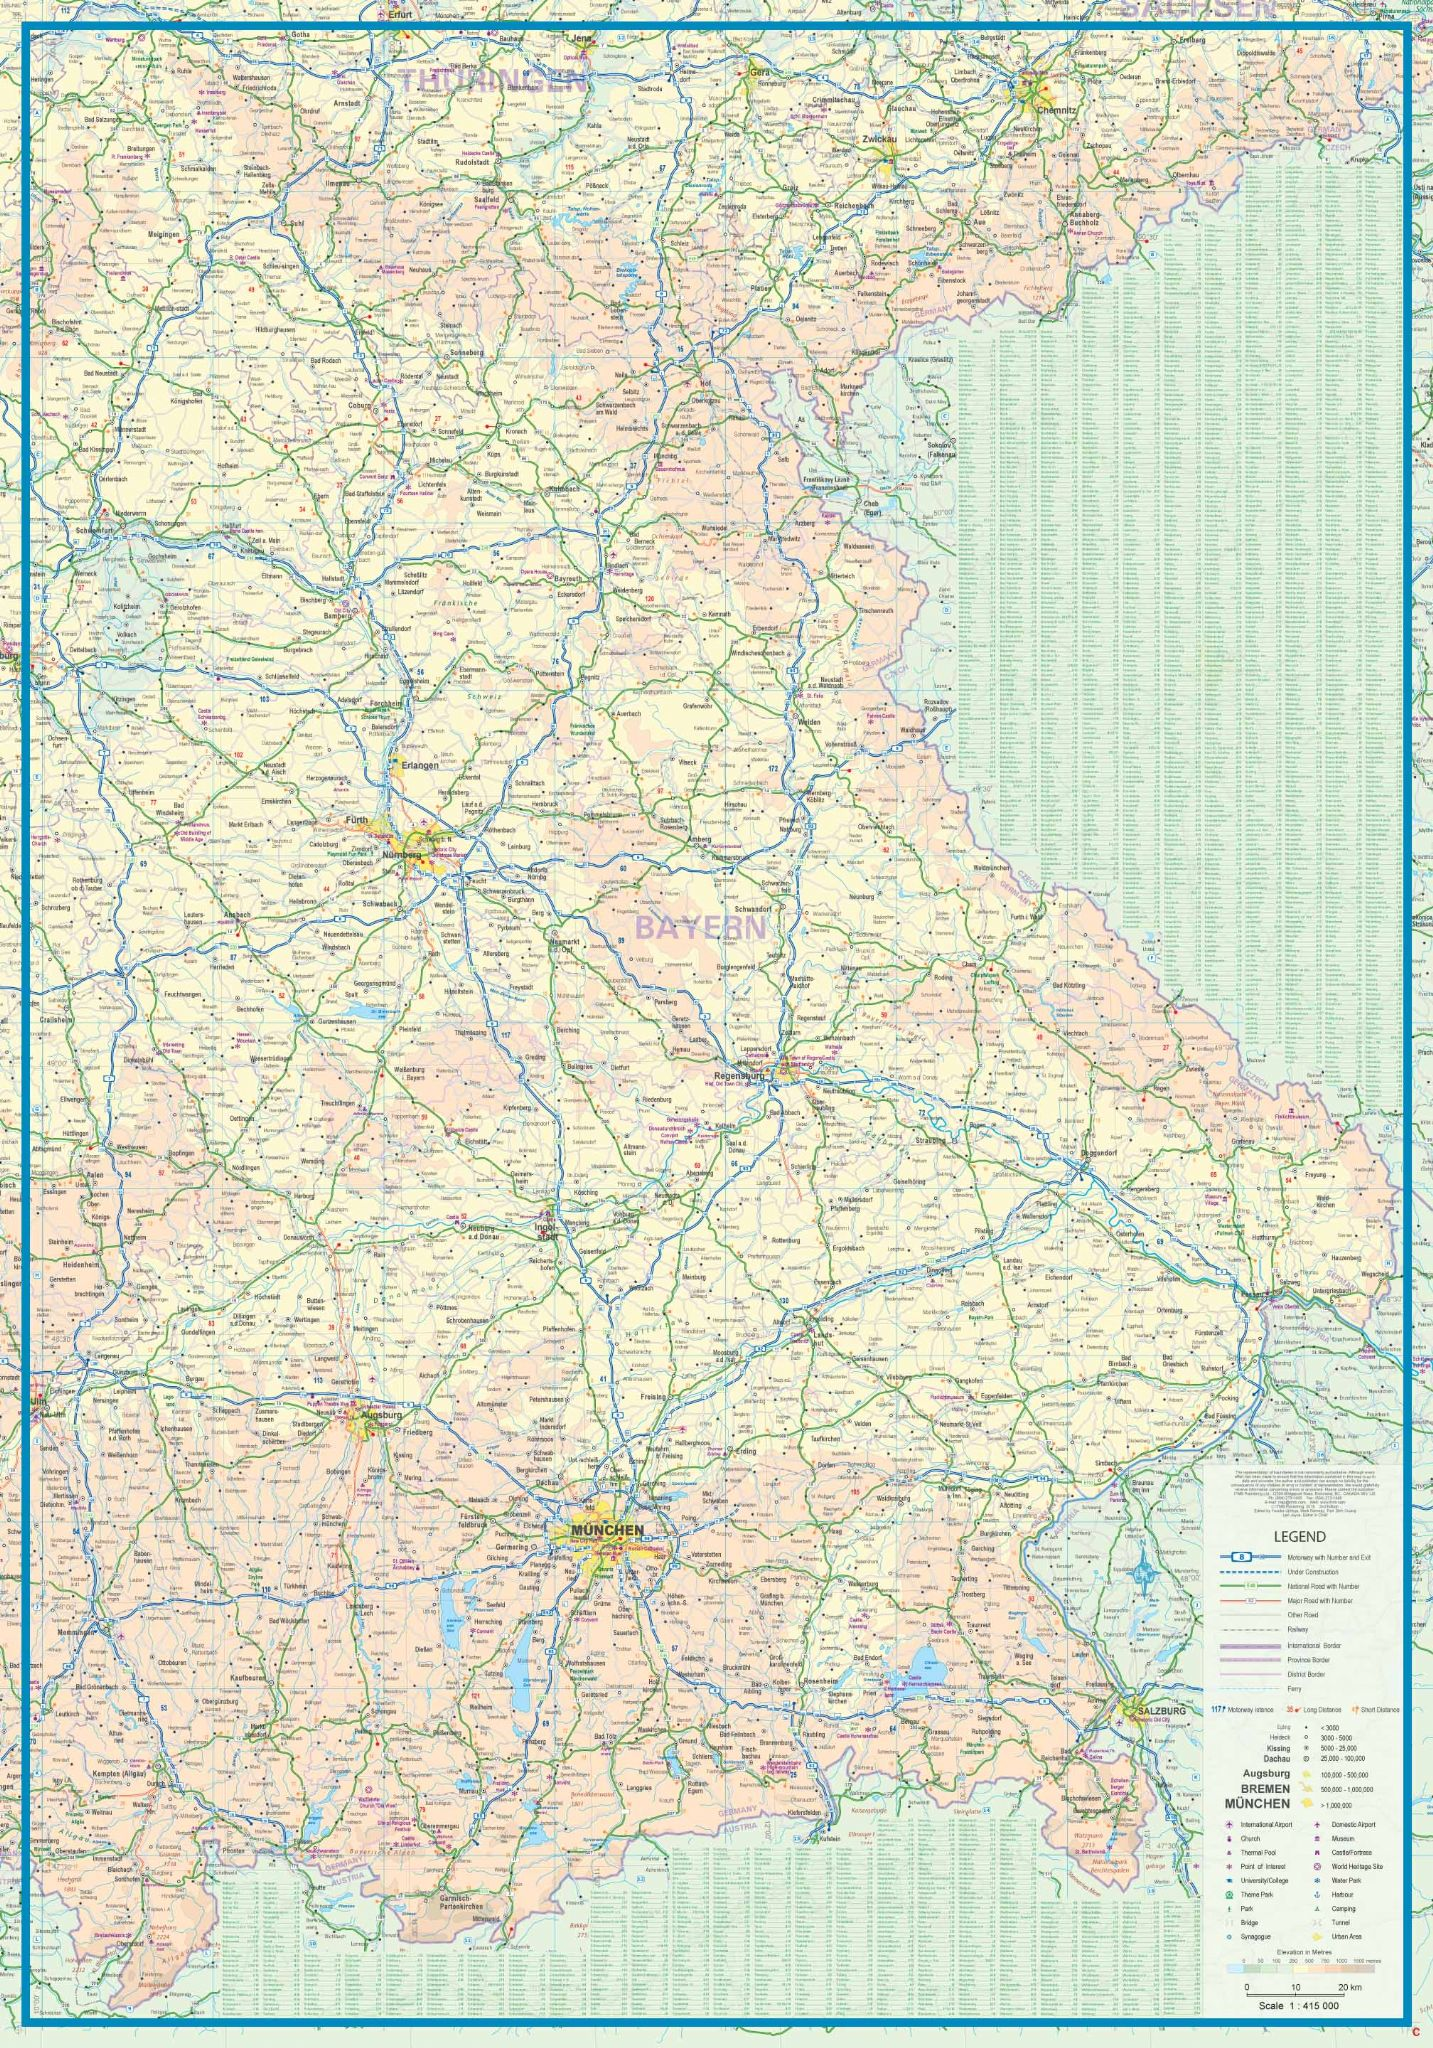 Southern Germany Travel Map